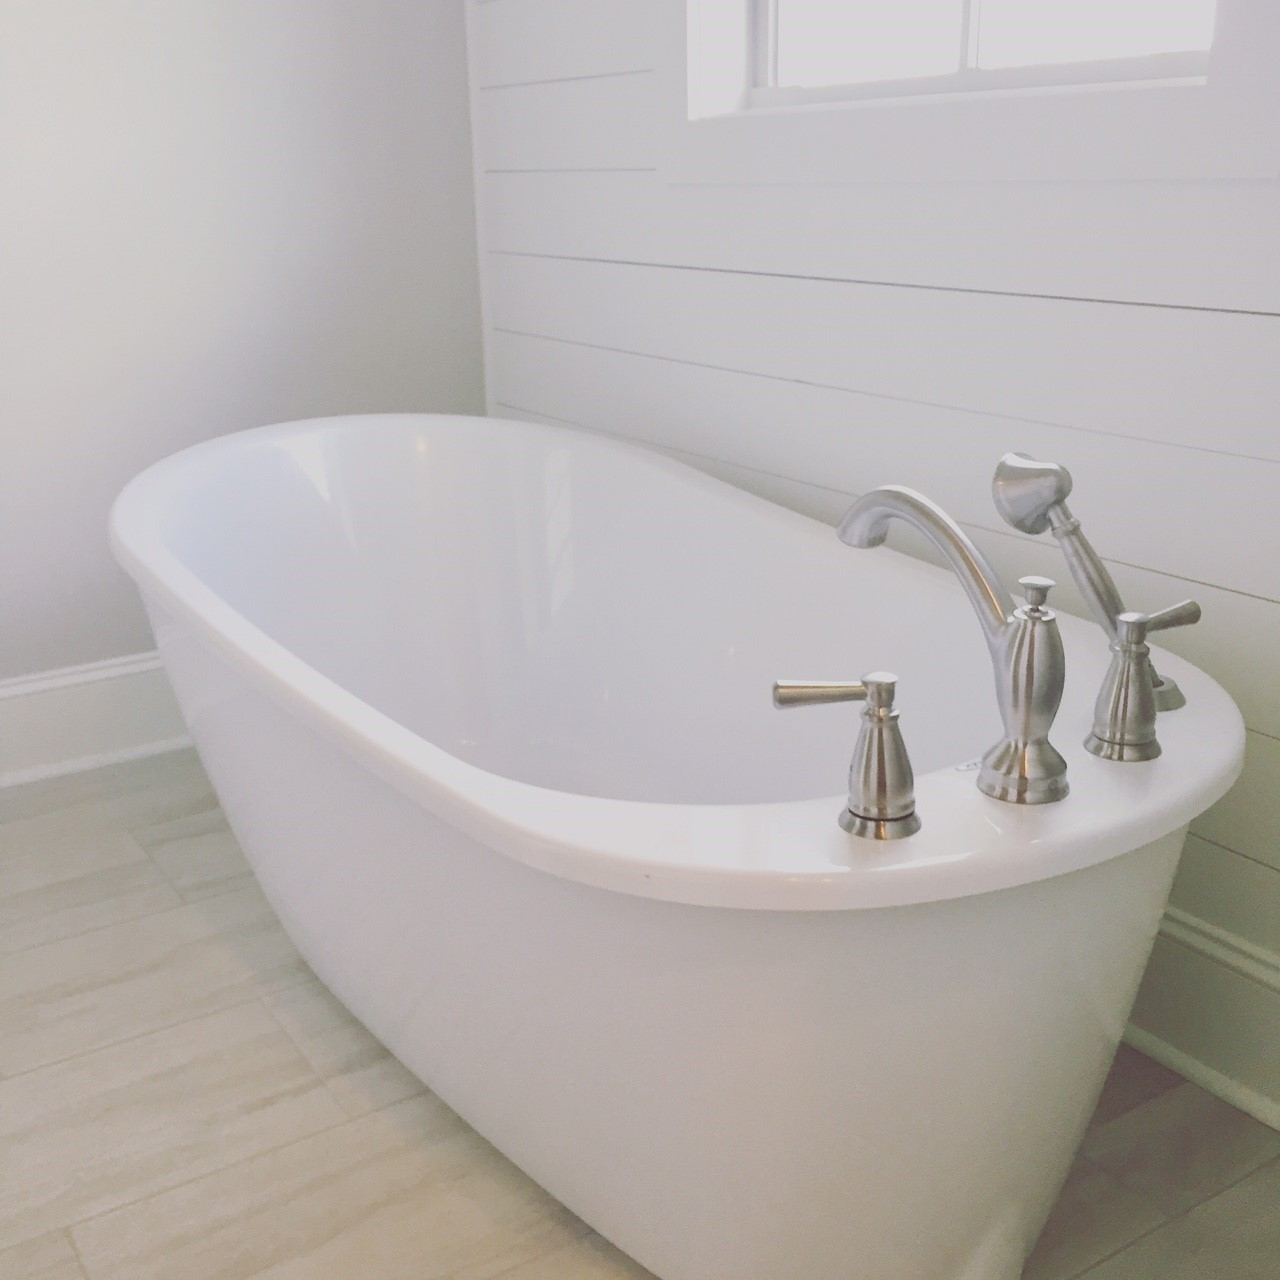 Tub space courtyard collection the waters al - Deep tub for small space collection ...